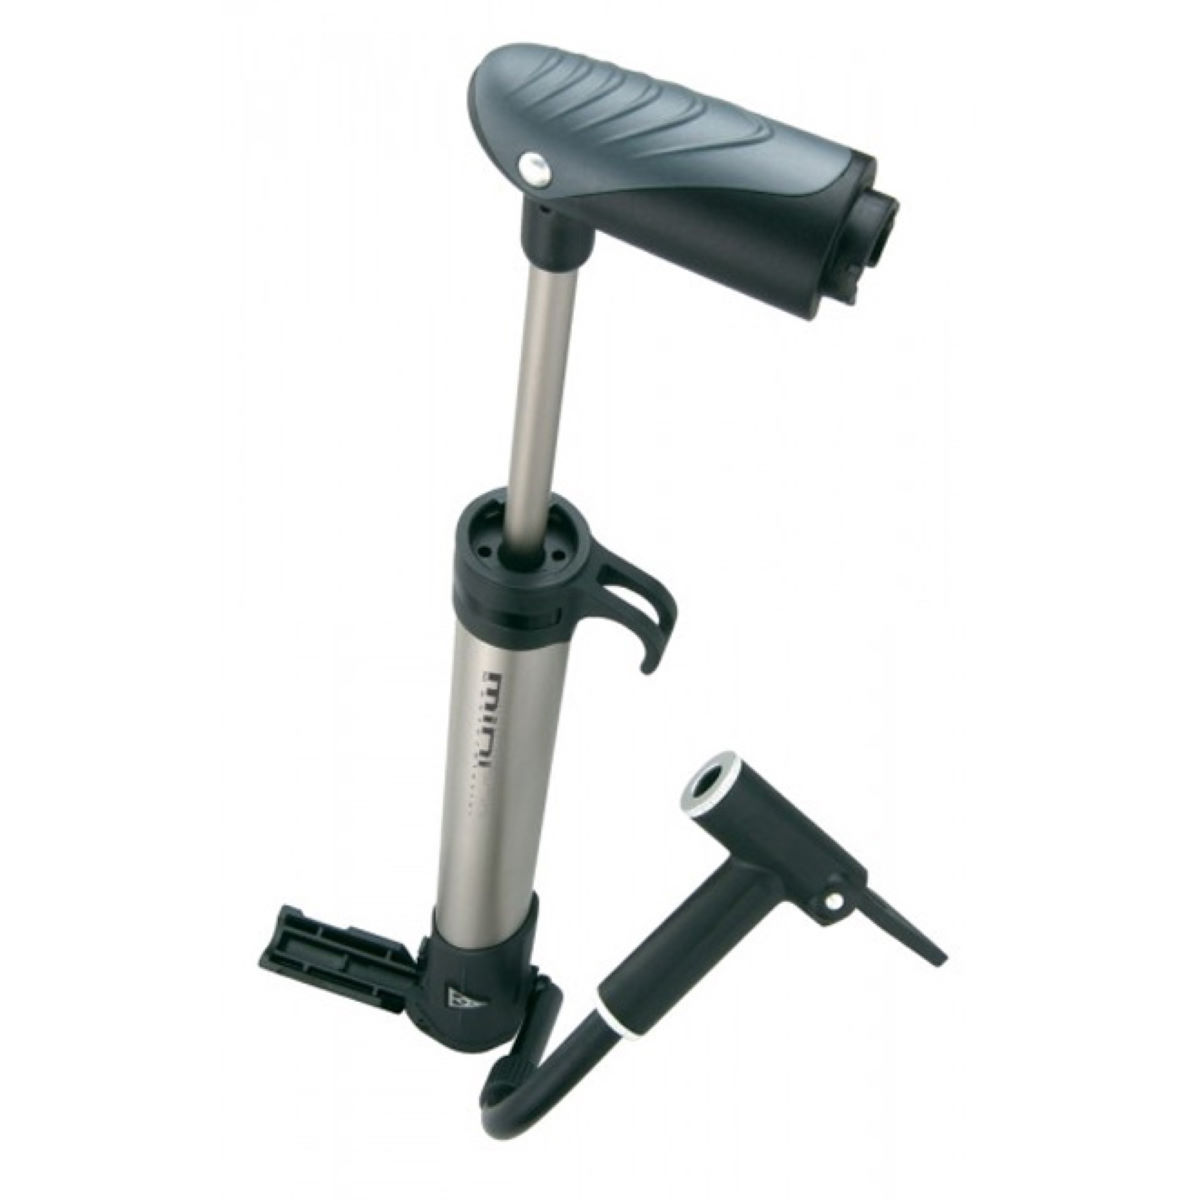 Topeak mini morph pump manual pumps tmm1